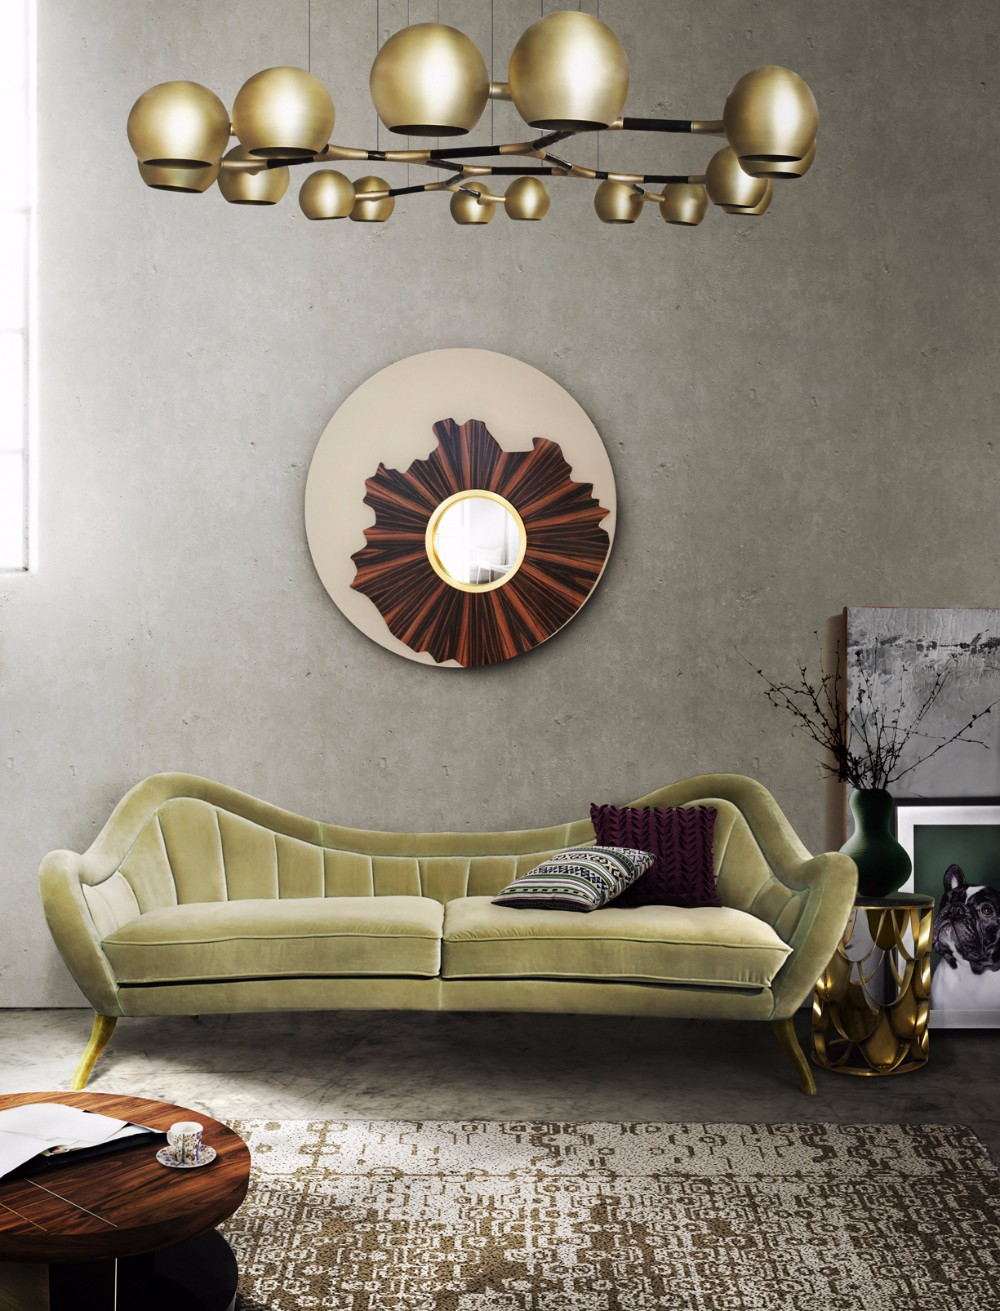 wall mirror wall mirror 20 Exquisite Wall Mirror Designs for Your Living Room KAAMOS 3